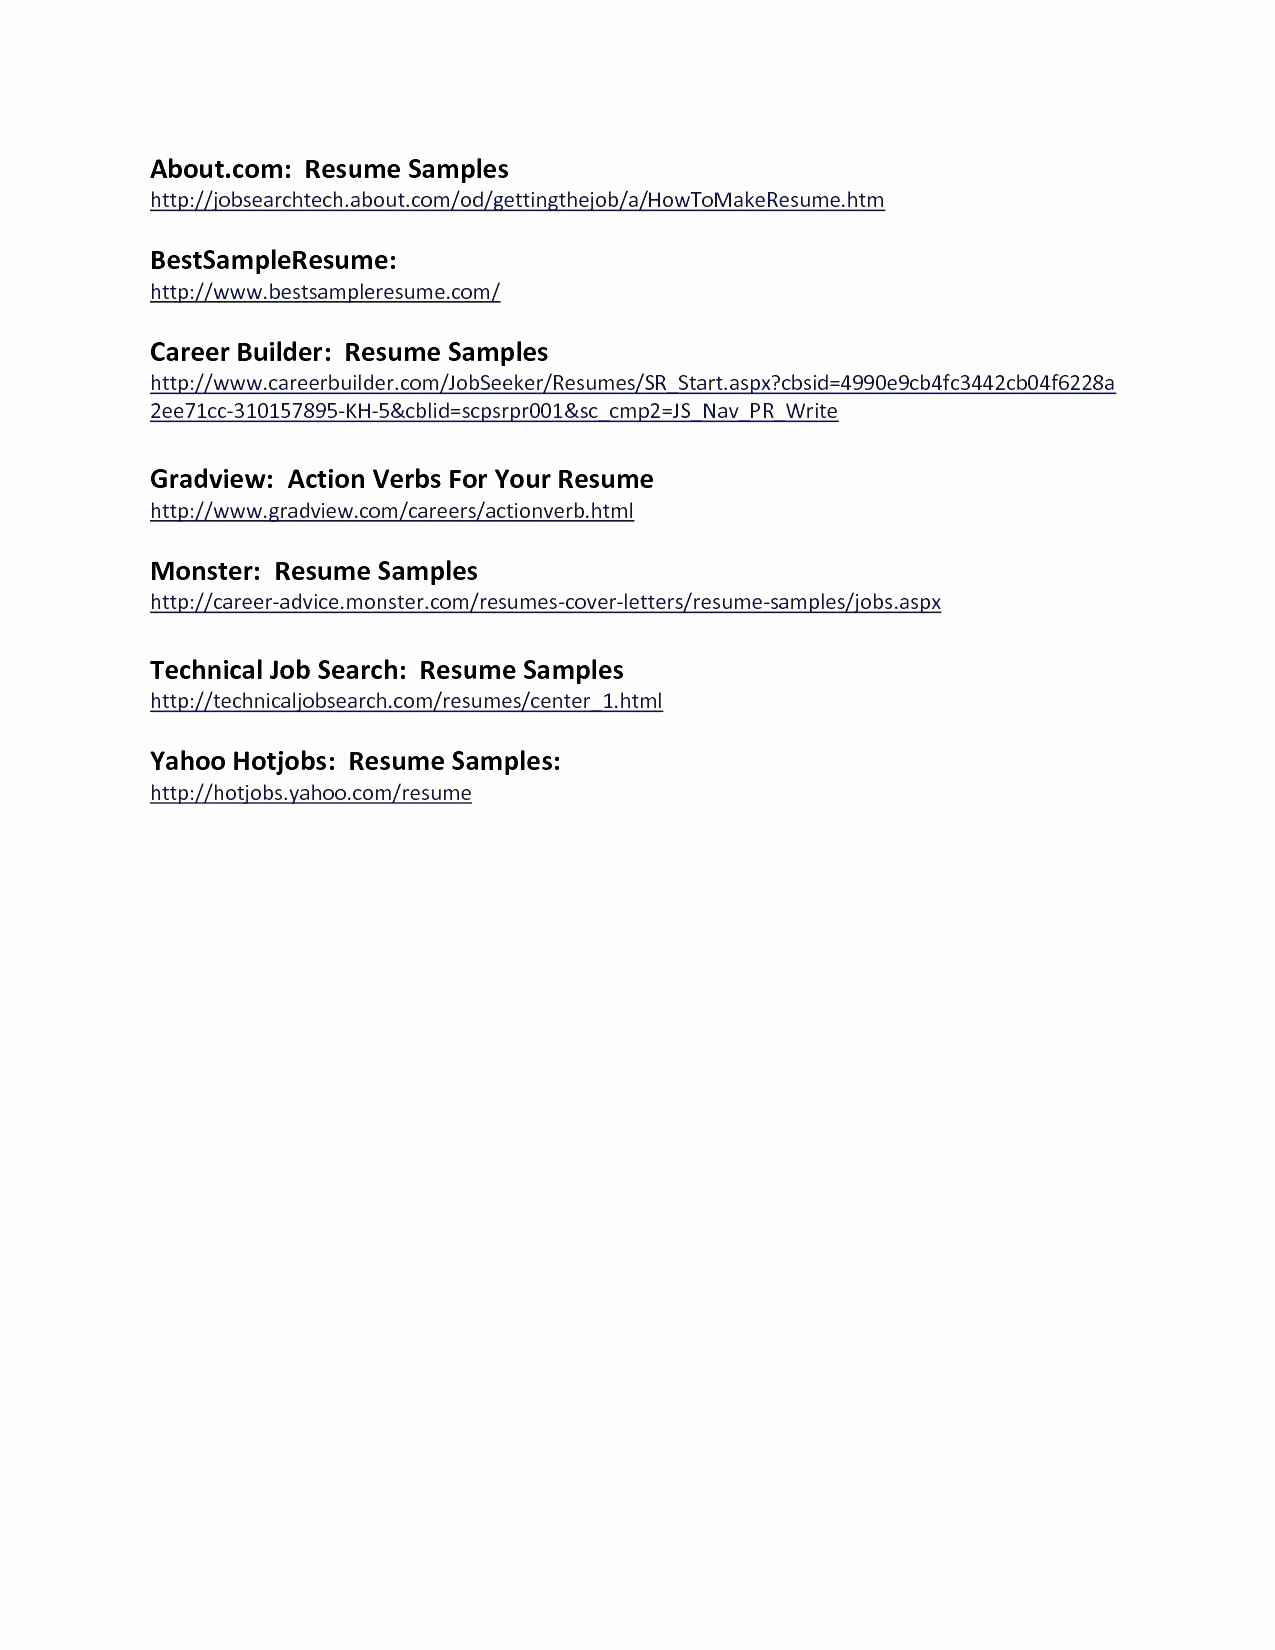 Theatre Resume Template Google Docs - Resume Templates Google Docs In English Free Downloads Resume